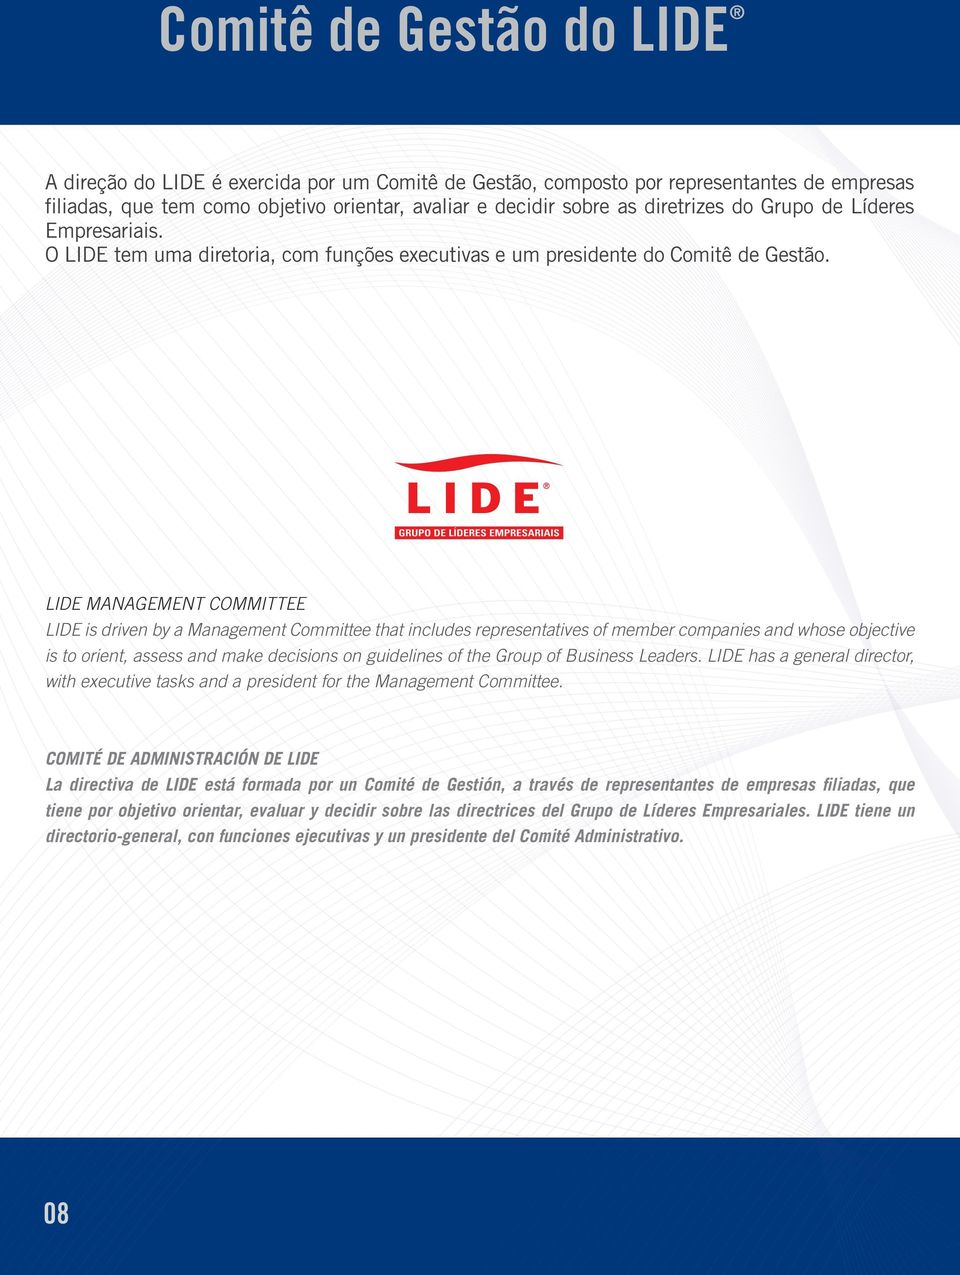 LIDE Management Committee LIDE is driven by a Management Committee that includes representatives of member companies and whose objective is to orient, assess and make decisions on guidelines of the